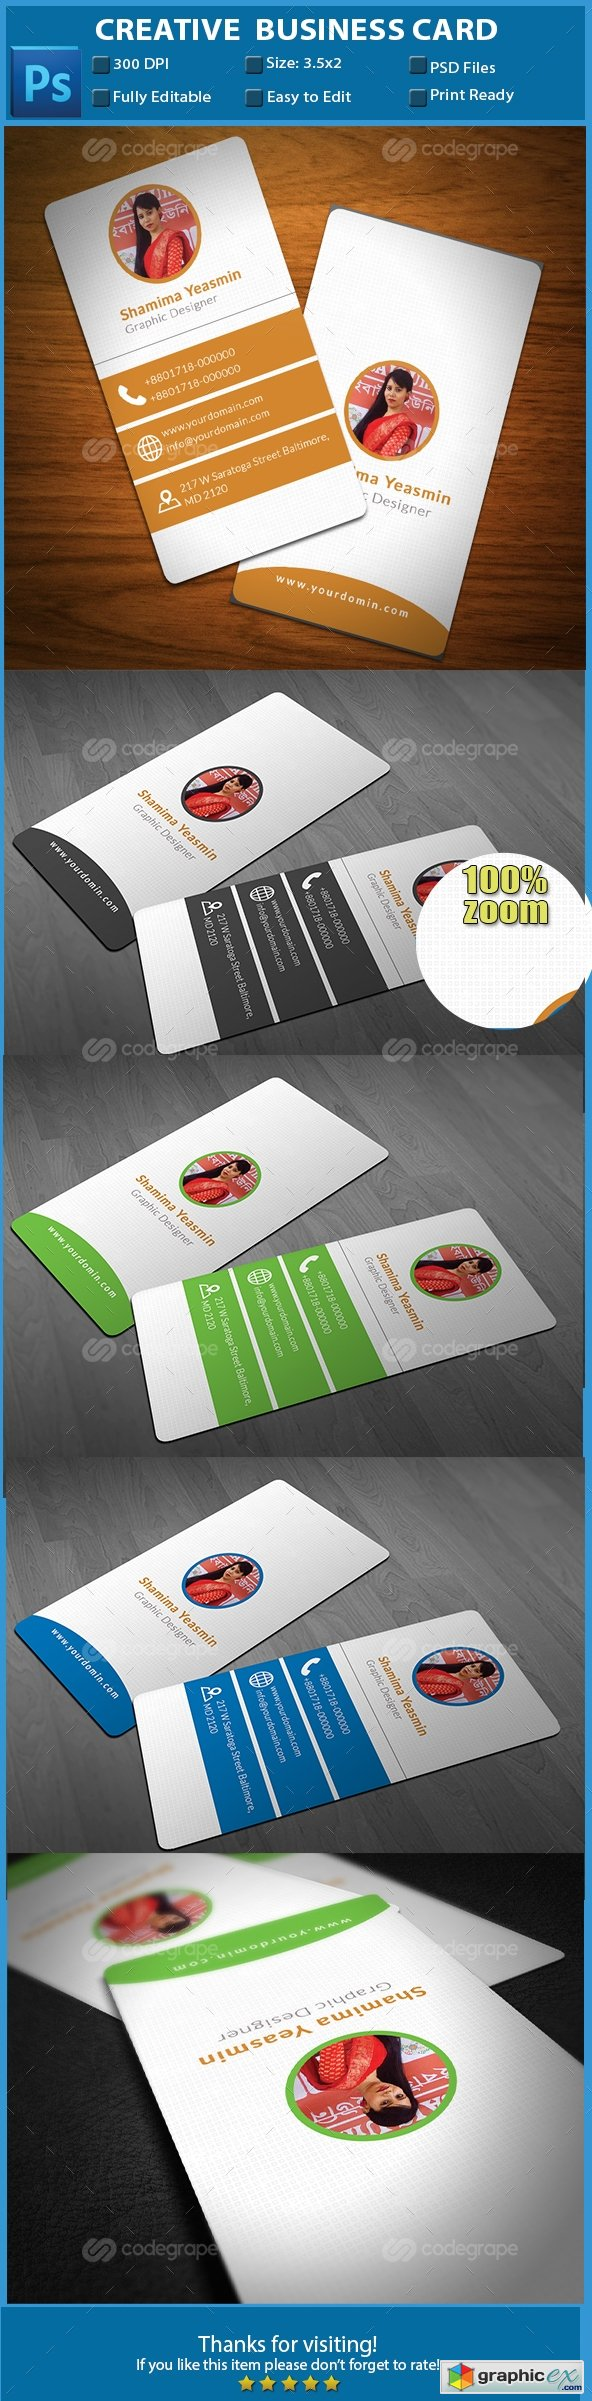 Creative Business Card 6109